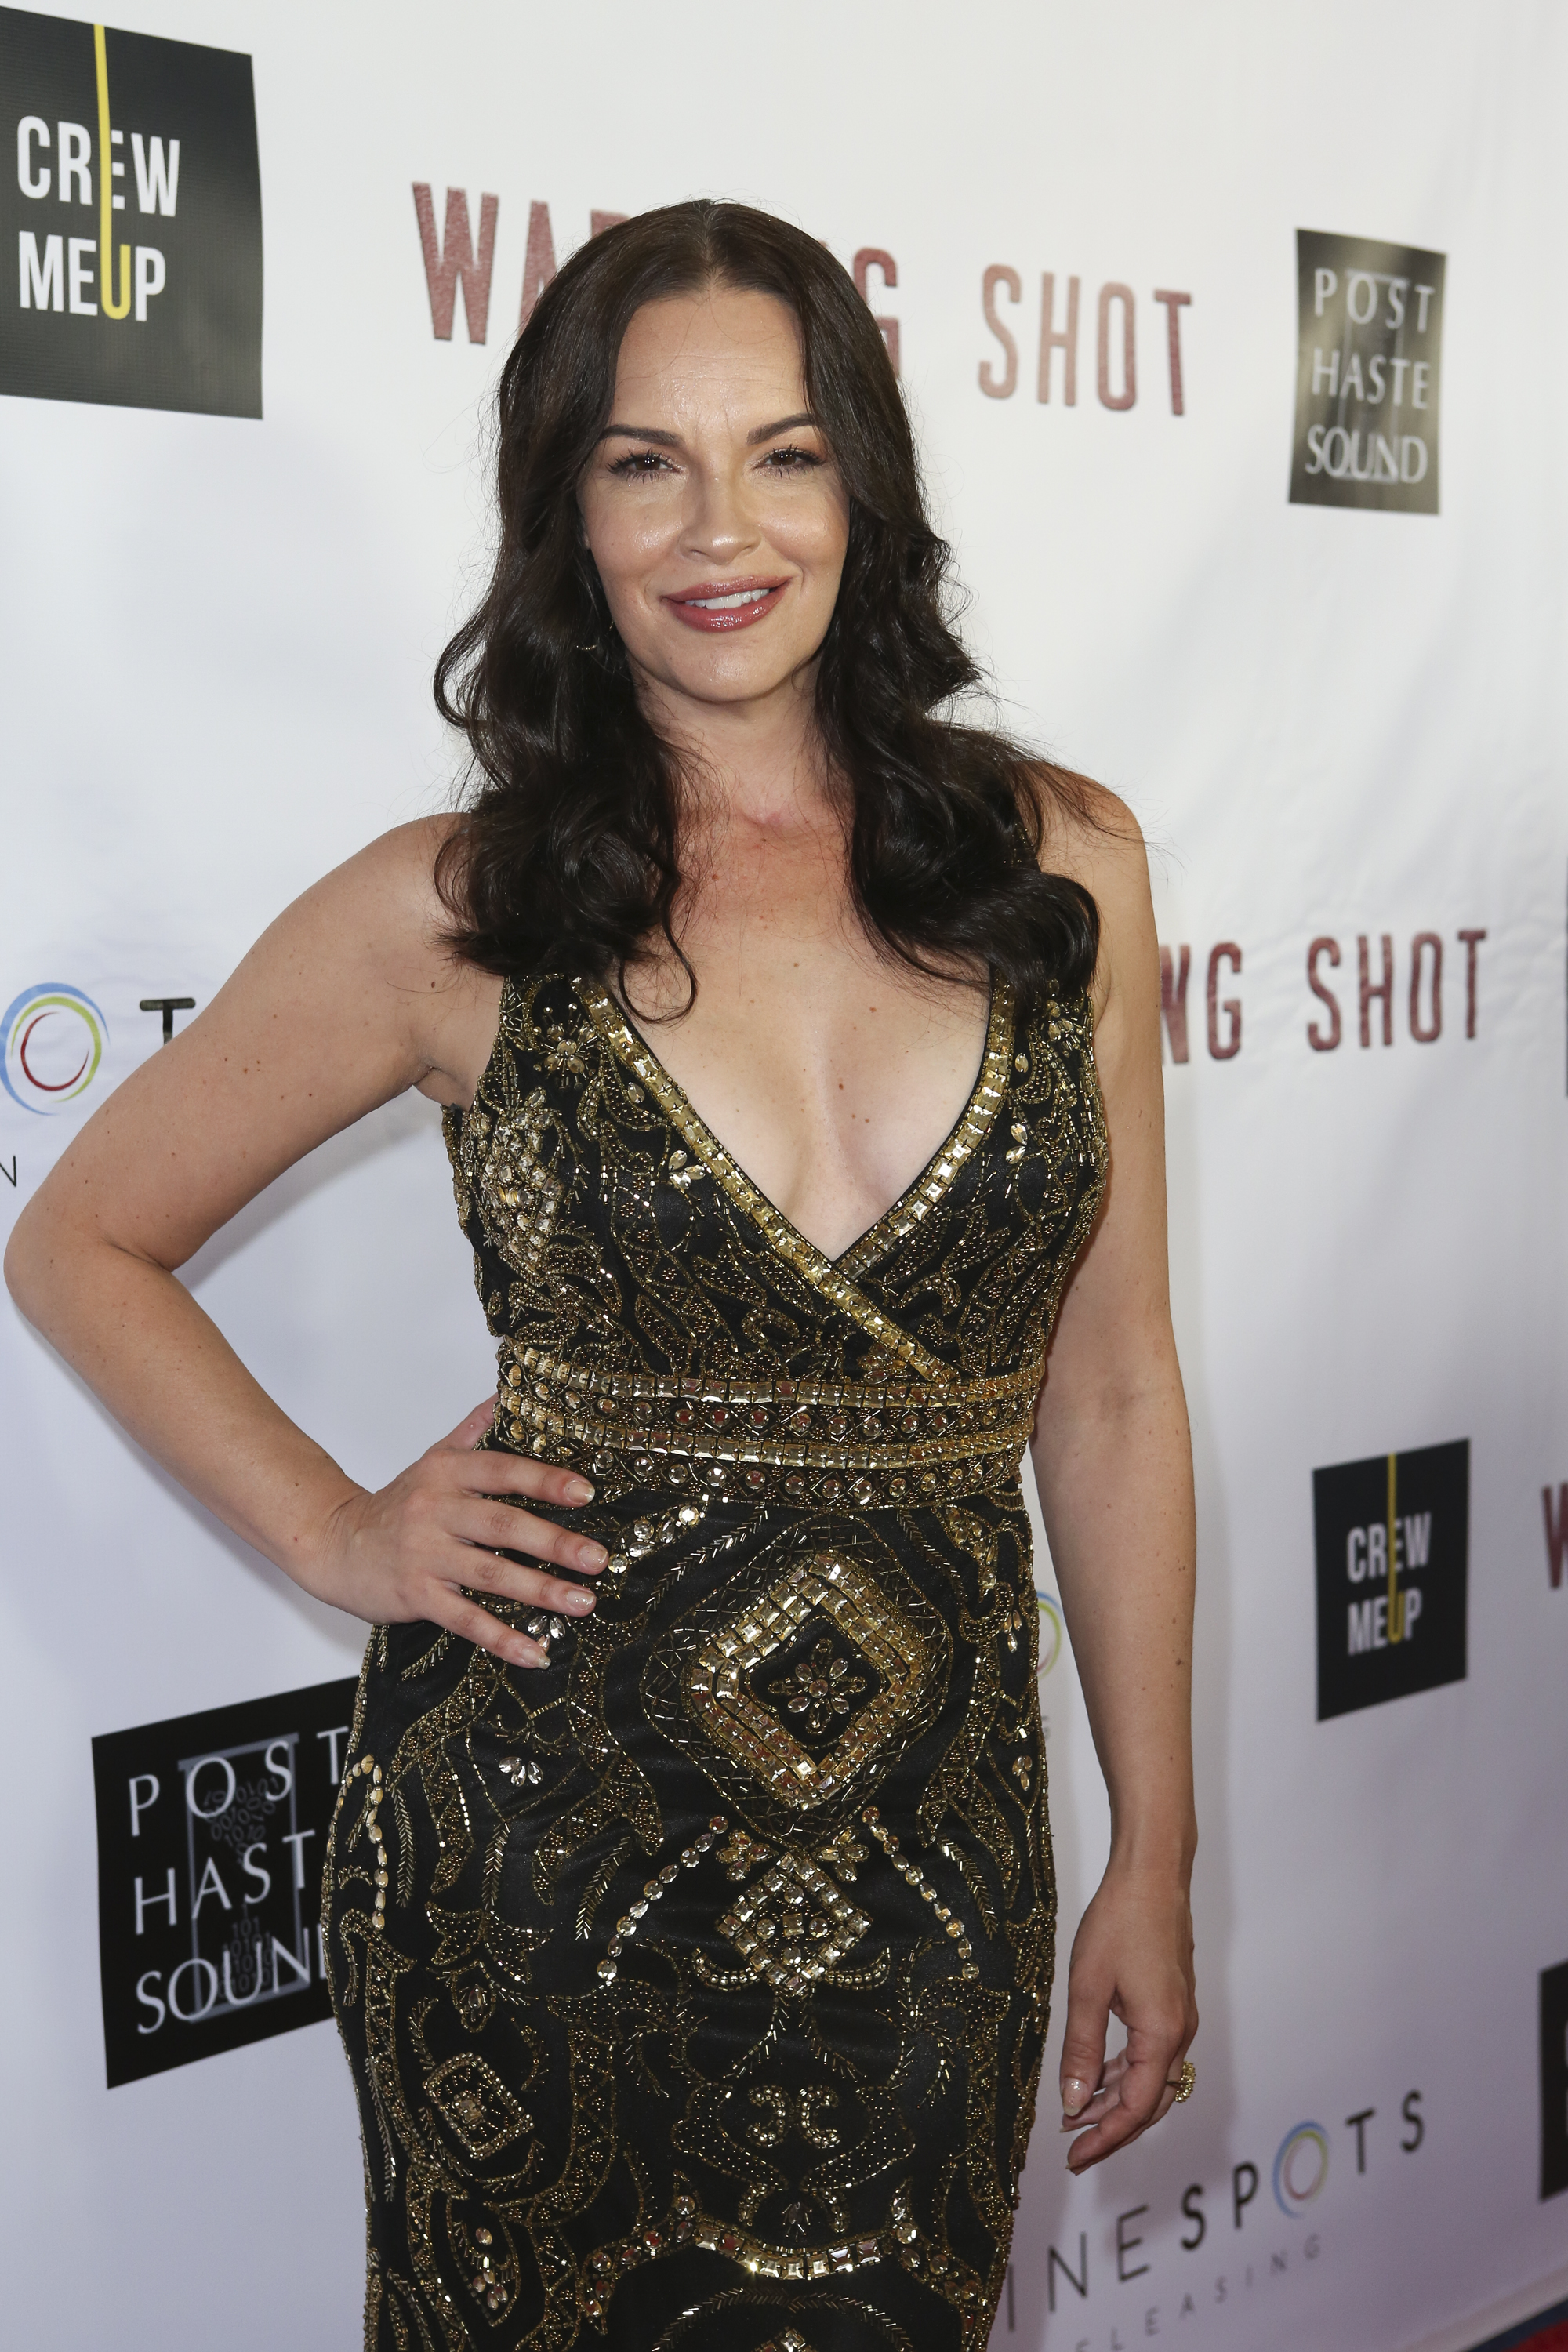 Lead Actress - Tammy Blanchard